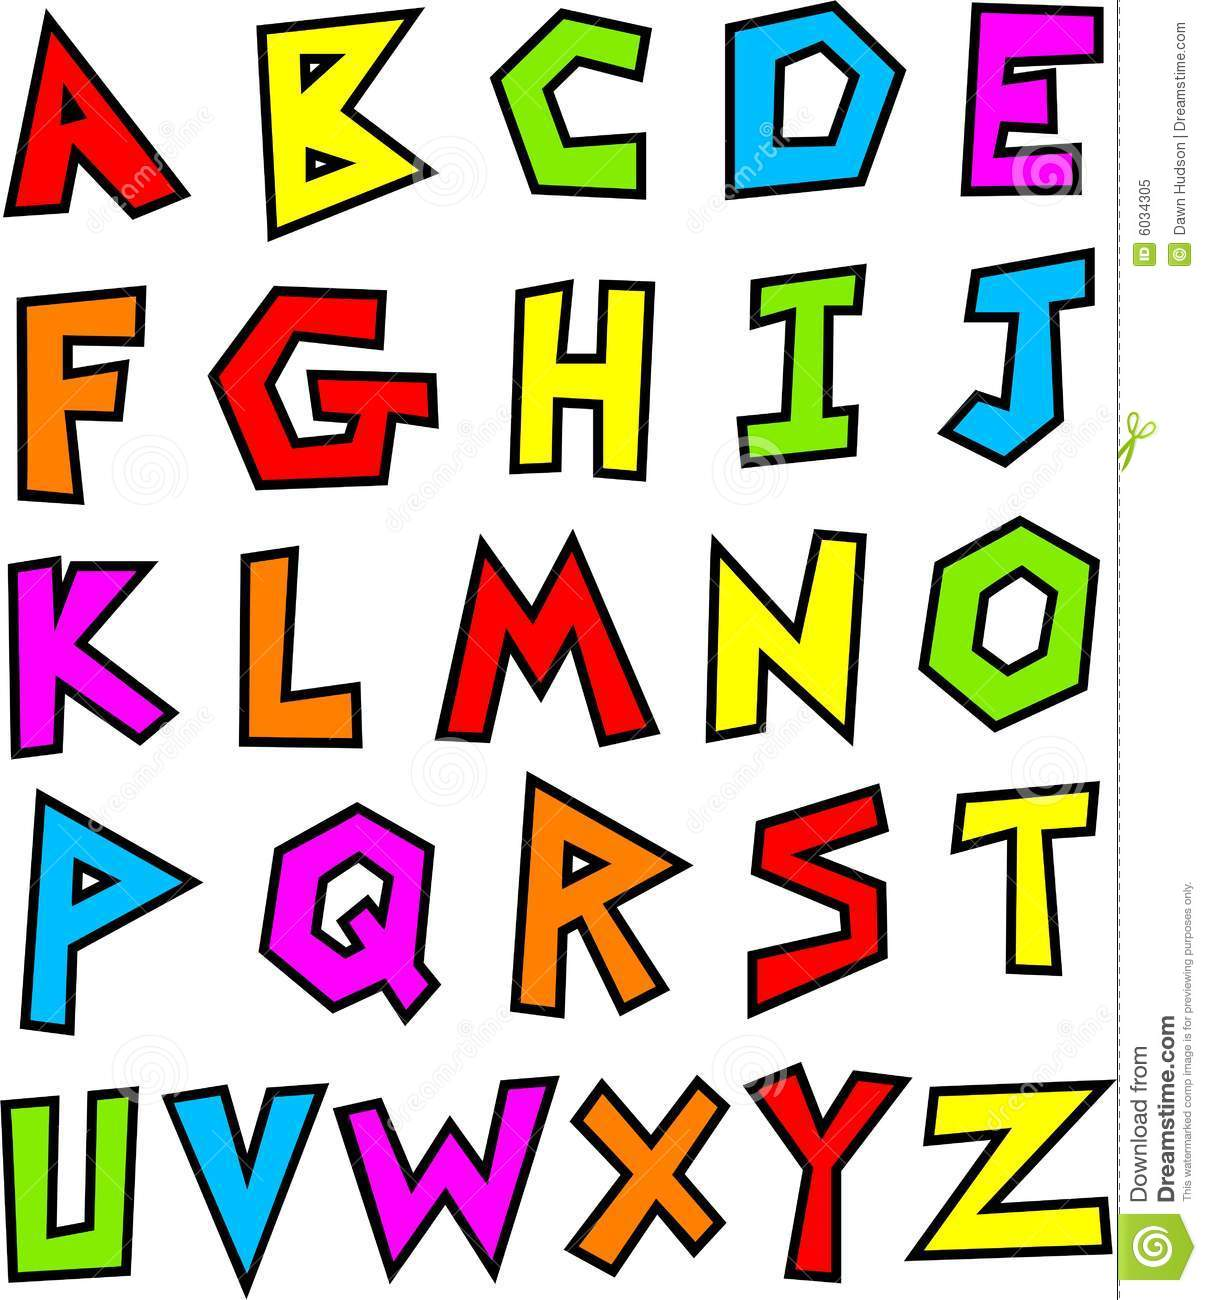 Funky Alphabet Royalty Free Stock Photo - Image: 6034305